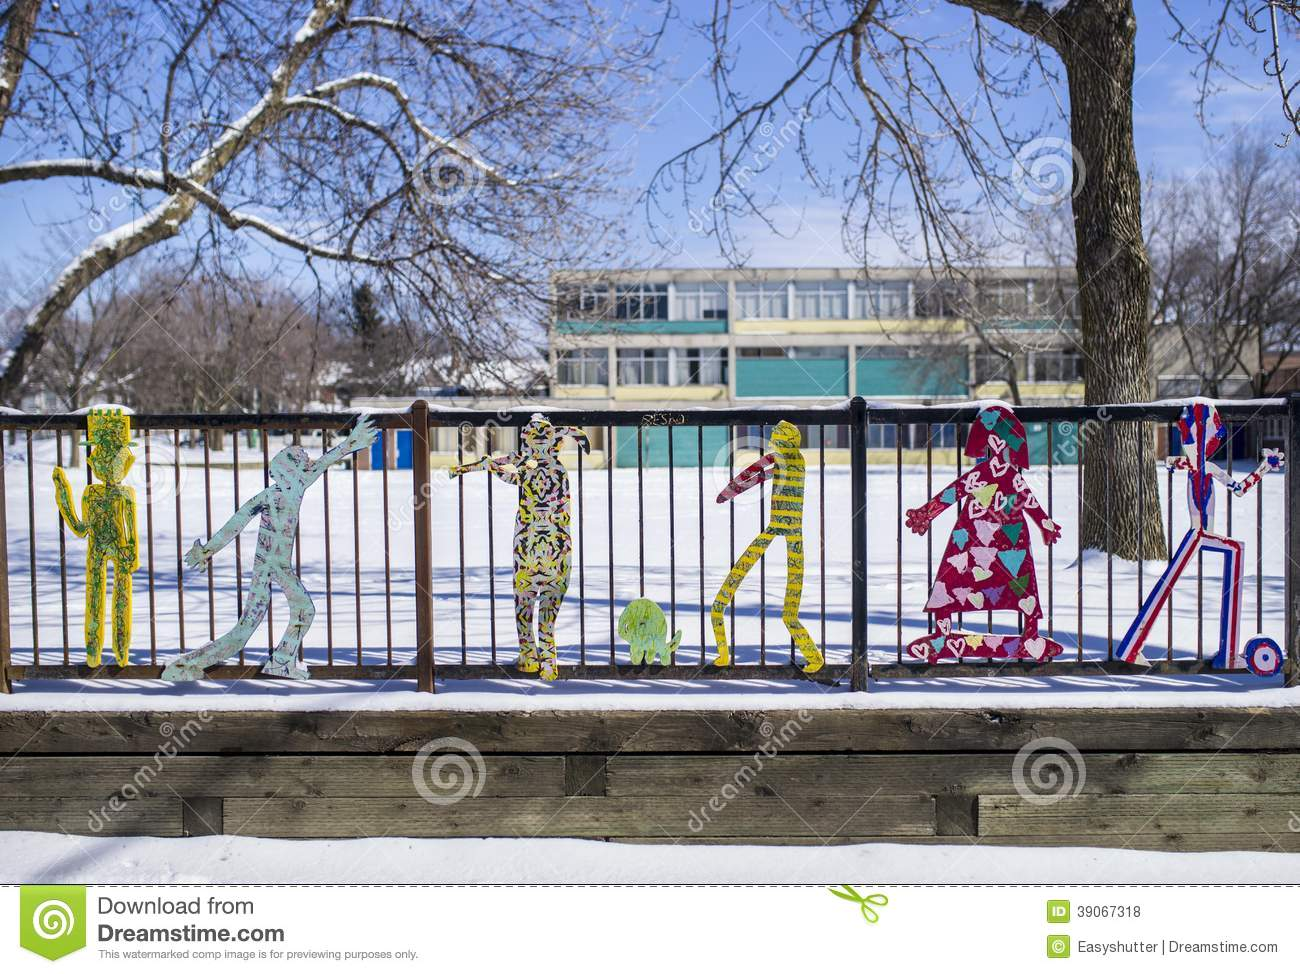 Characters On A School Fence Stock Photo Image Of Fencing Playground 39067318